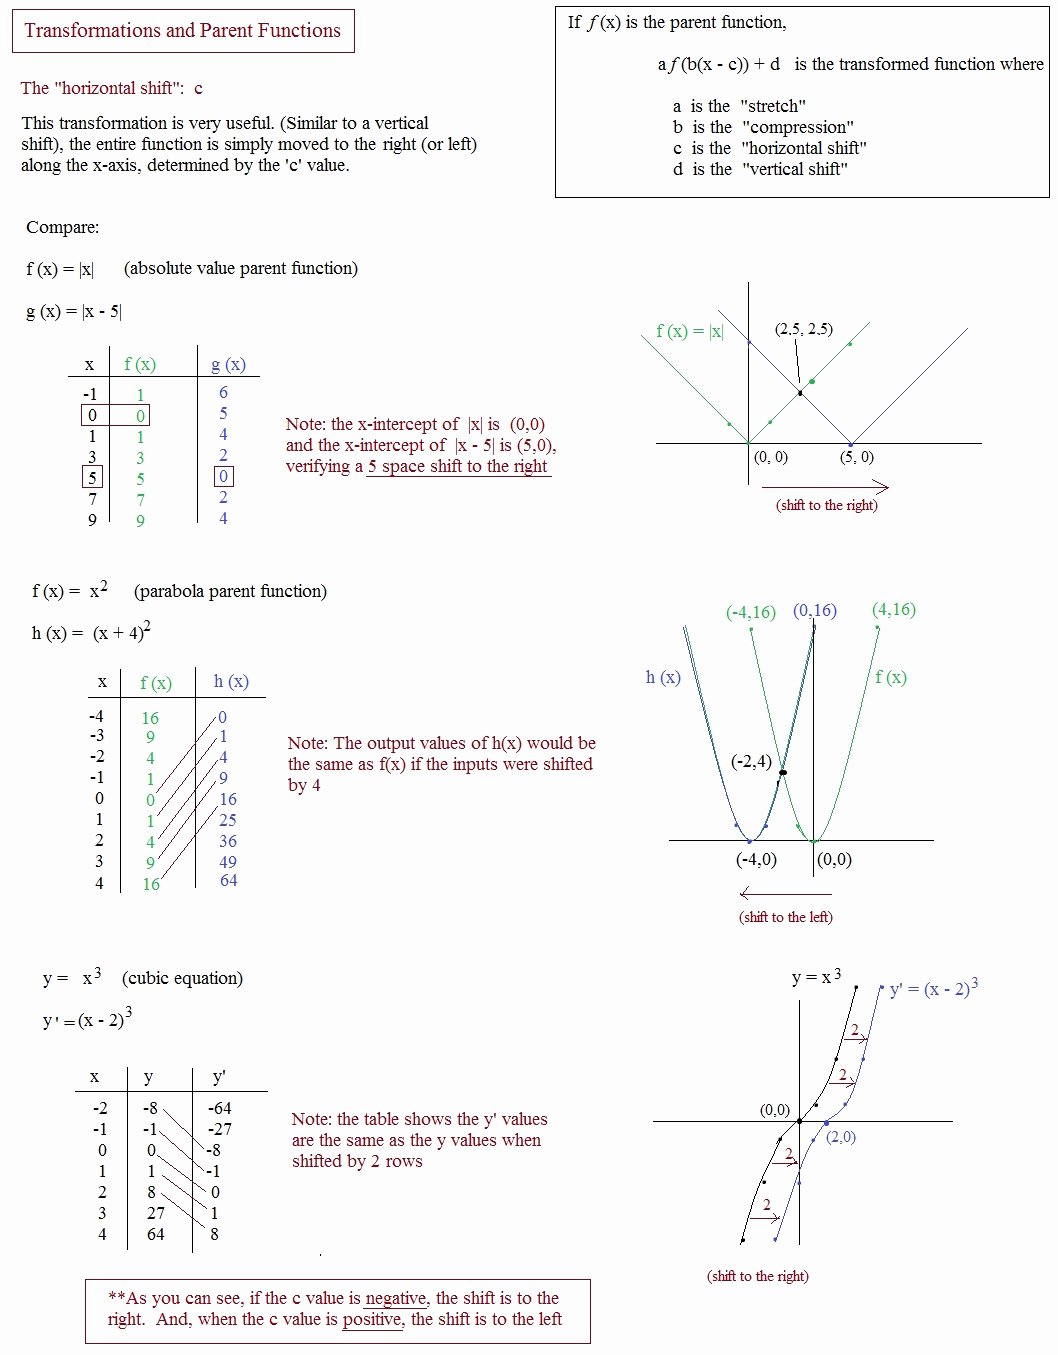 50 Triangle Congruence Proof Worksheet